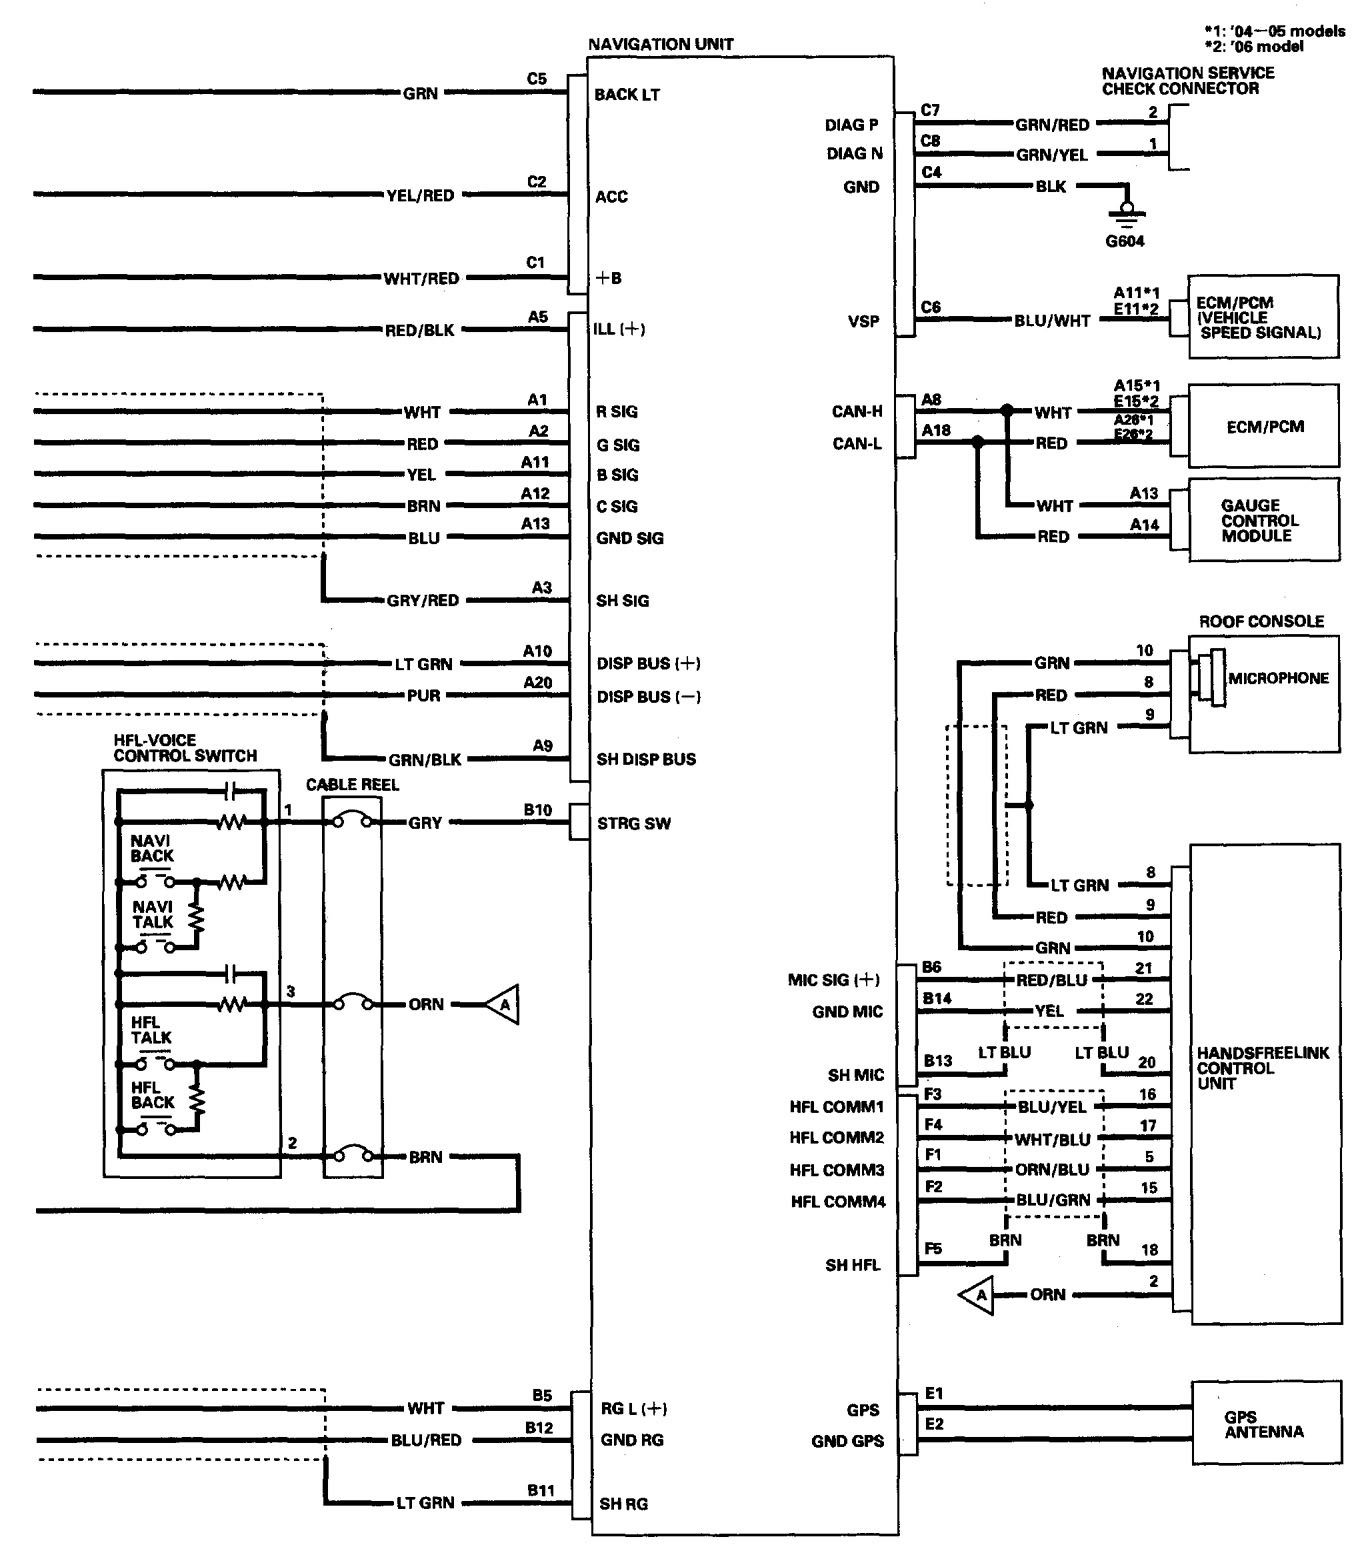 2012 acura mdx wiring harness diagram online wiring diagram 2003 Acura MDX Electrical Diagram